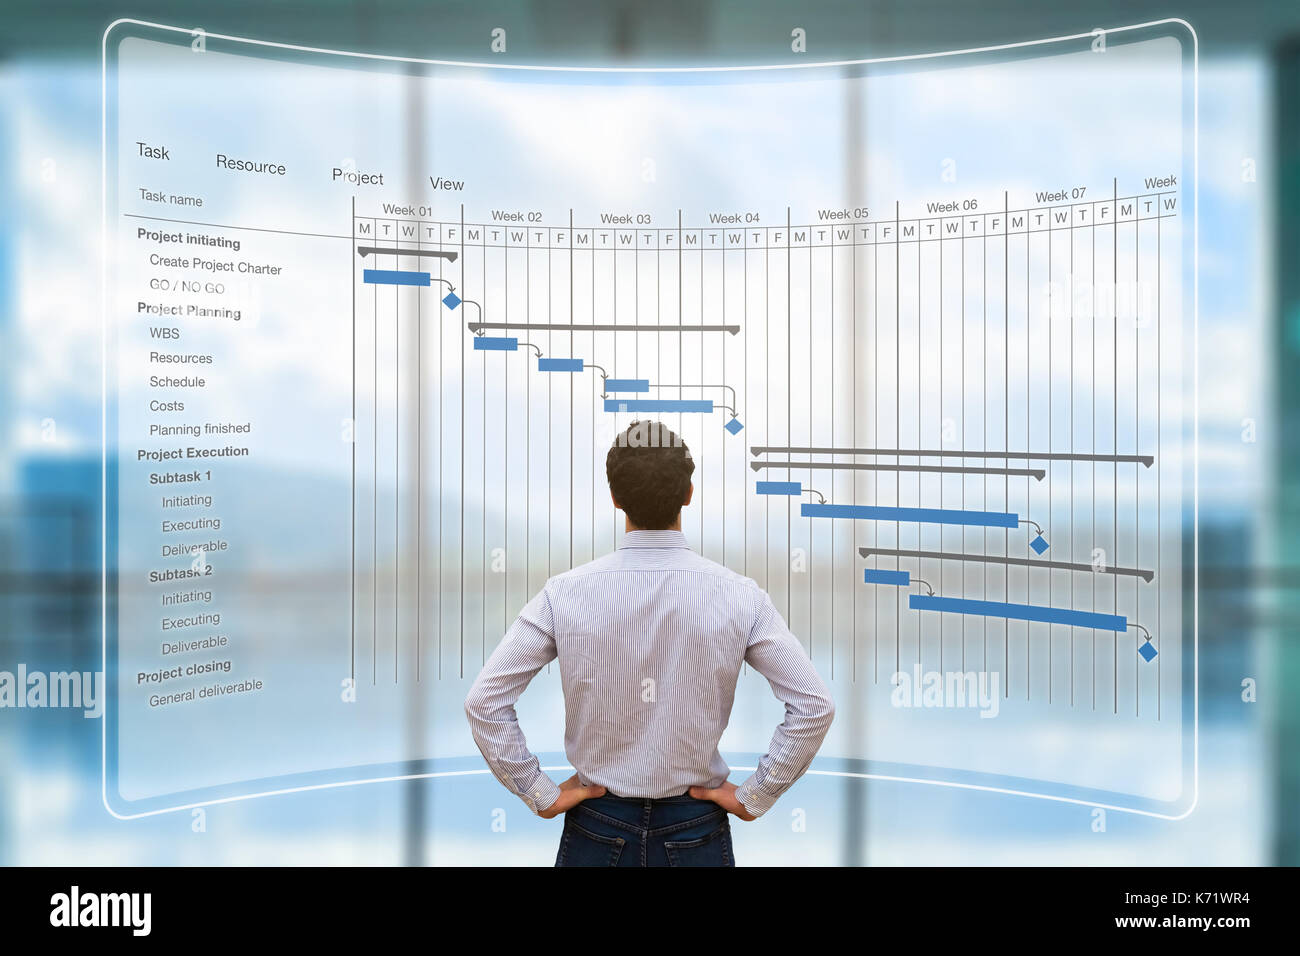 Project manager looking at AR screen with Gantt chart schedule or planning showing tasks and deadlines - Stock Image